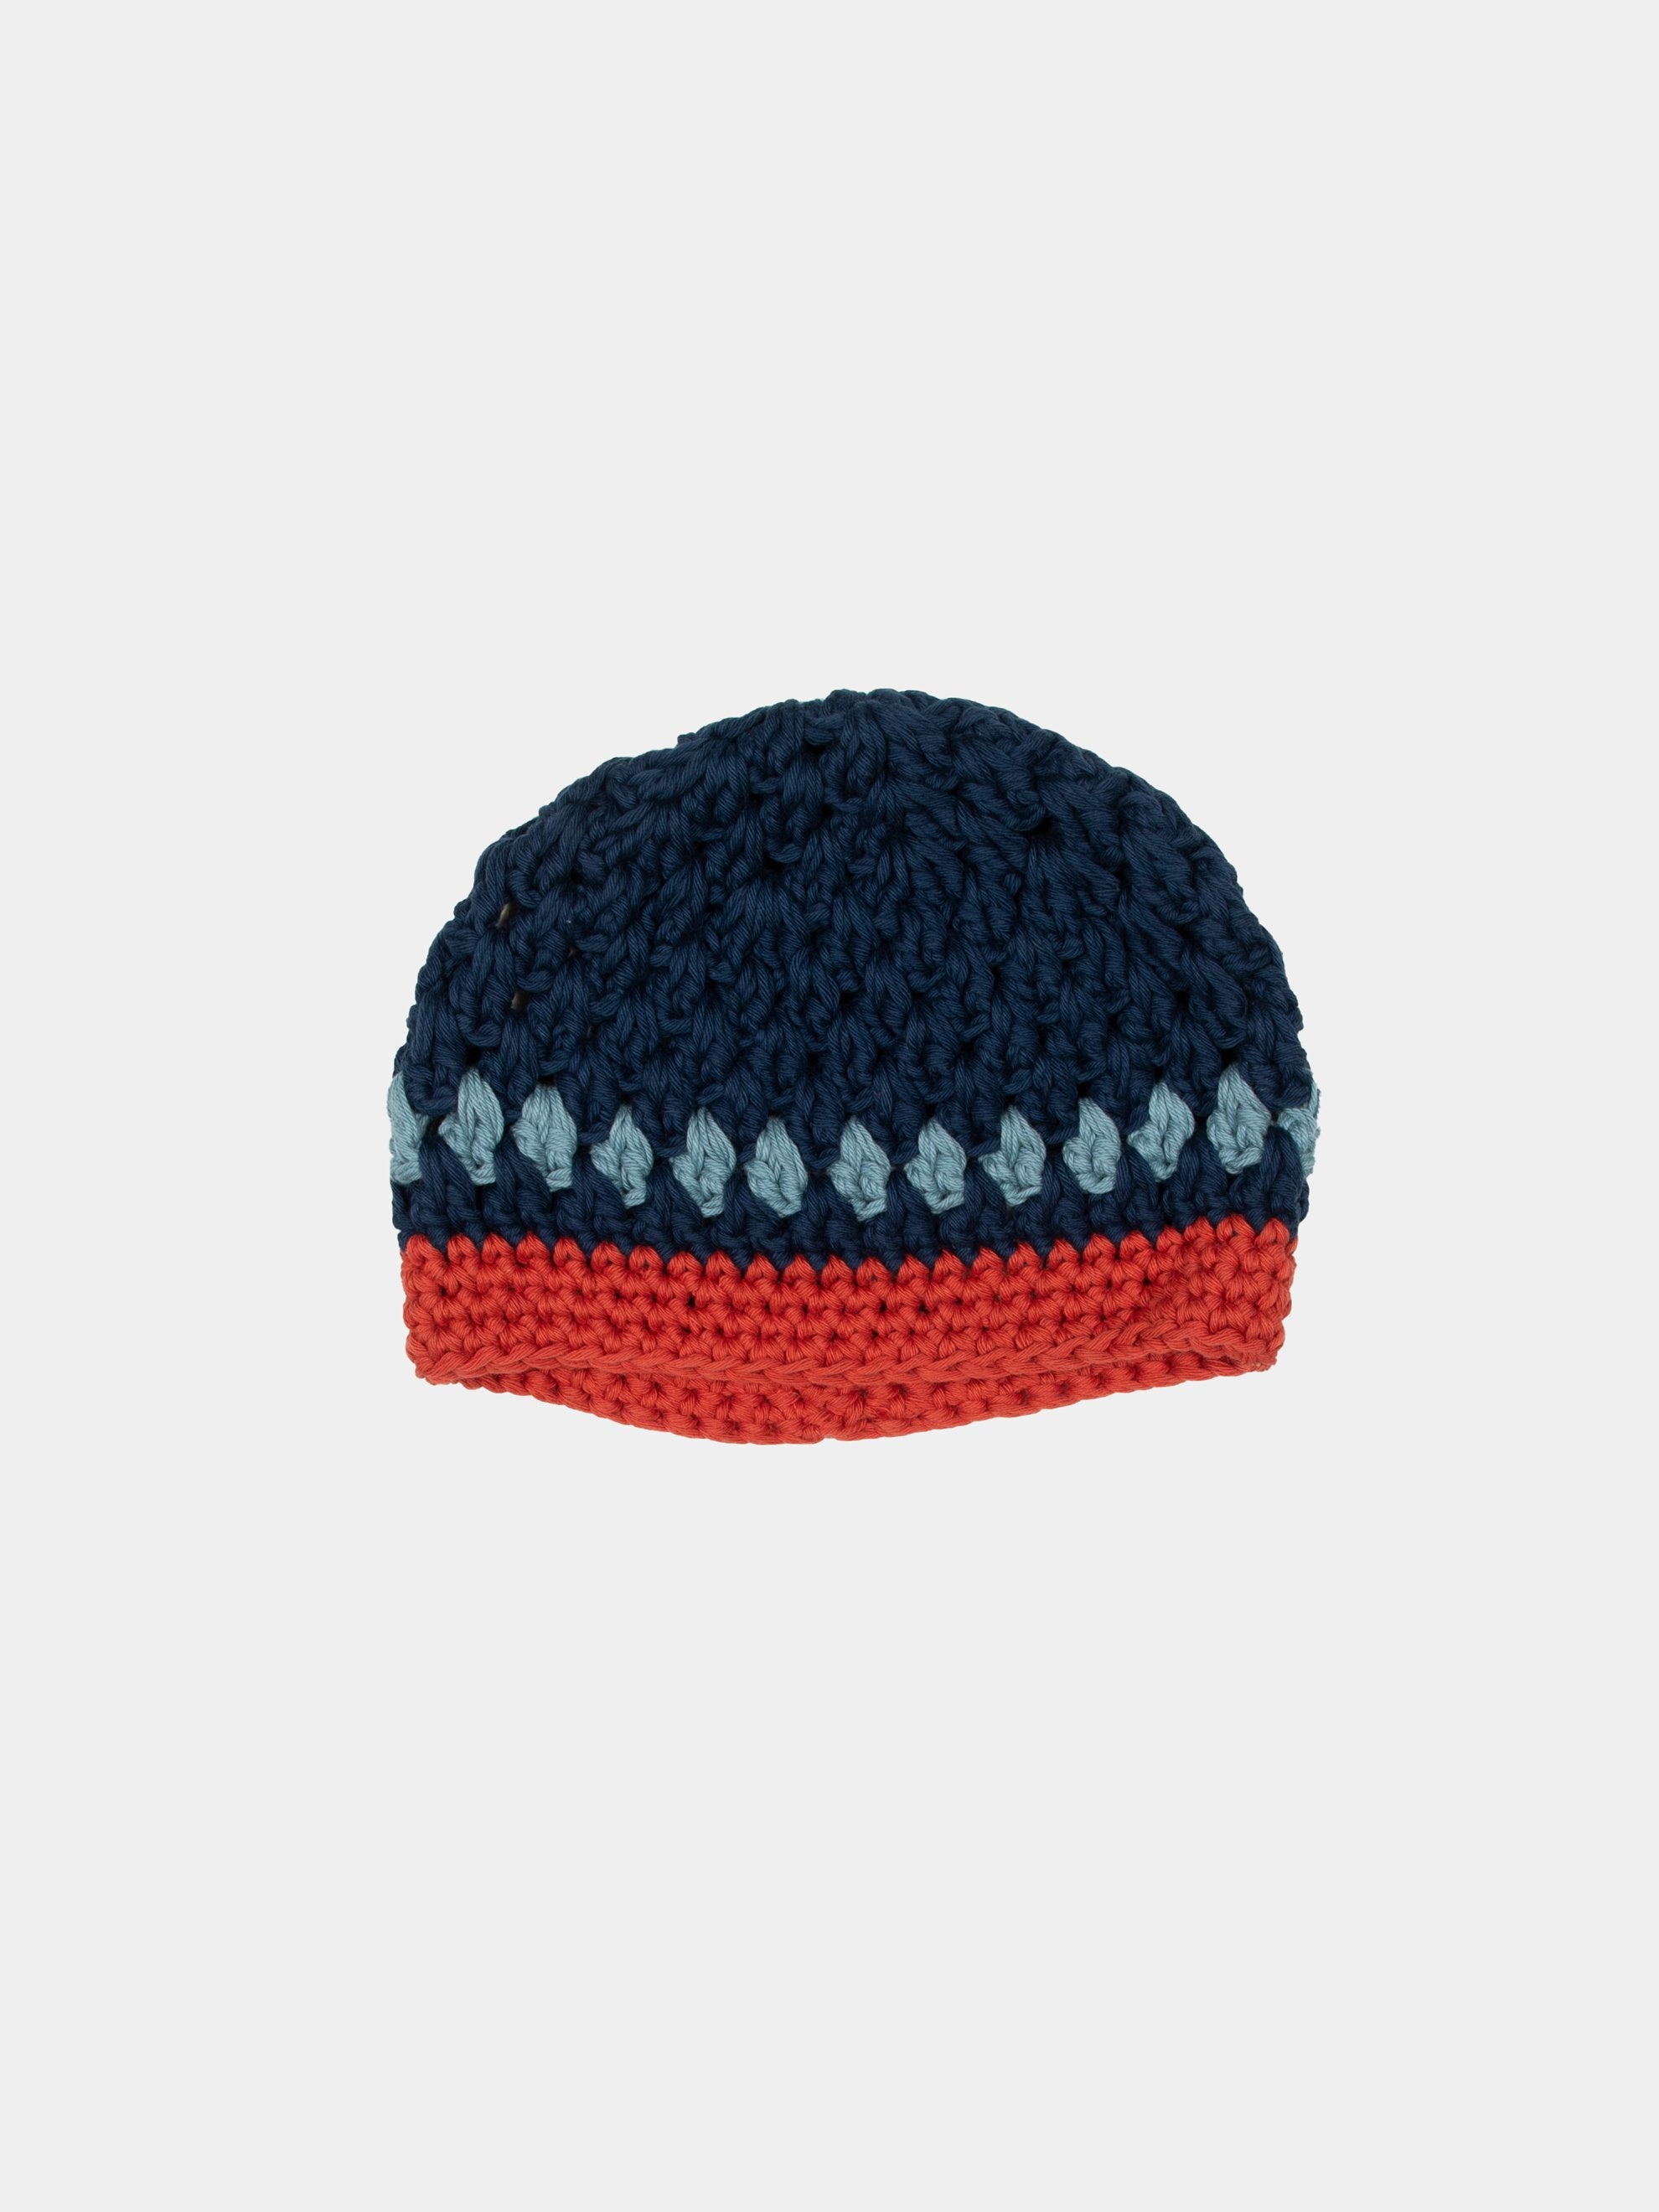 Navy/Orange/Blue Hand Knitted Beanie 2